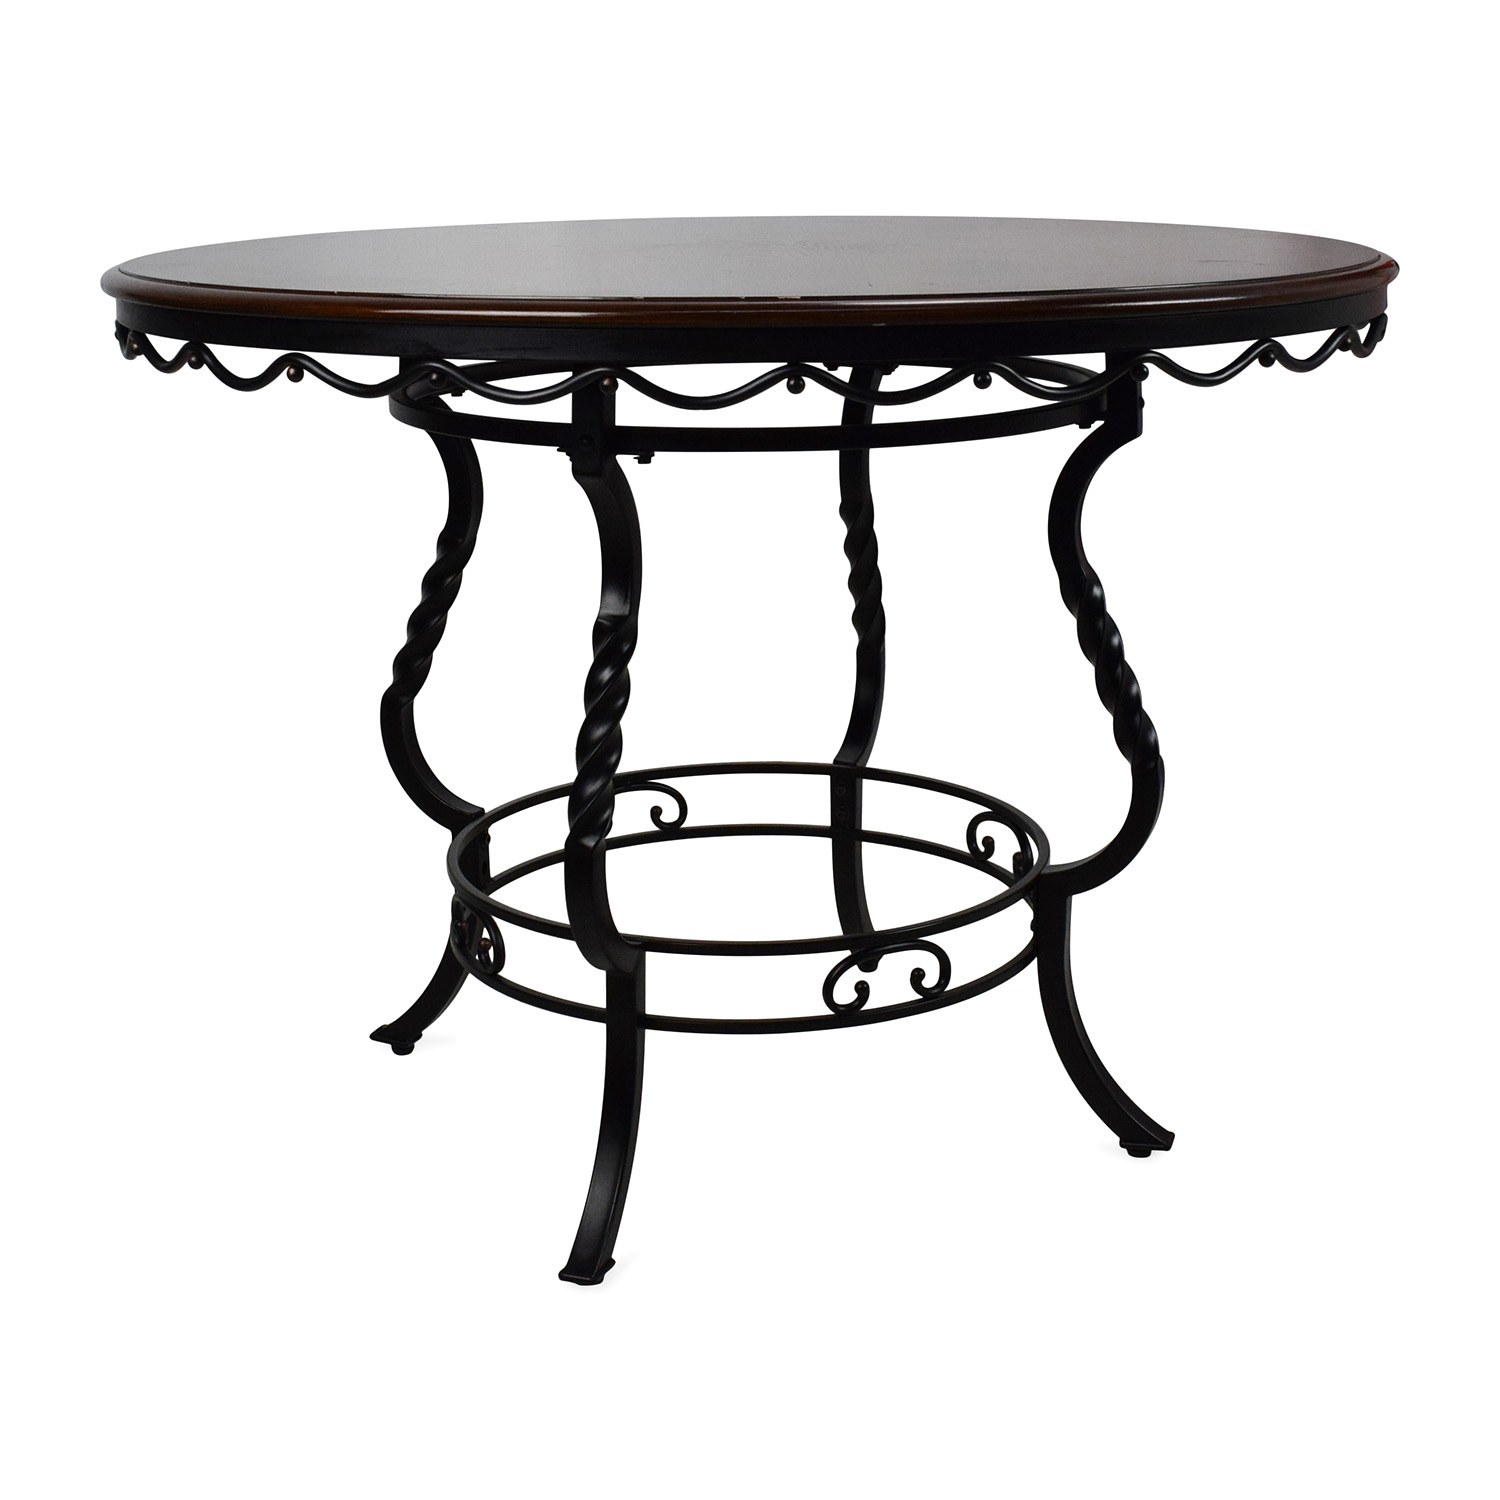 84 off ashley furniture ashley nola round dining table tables. Black Bedroom Furniture Sets. Home Design Ideas